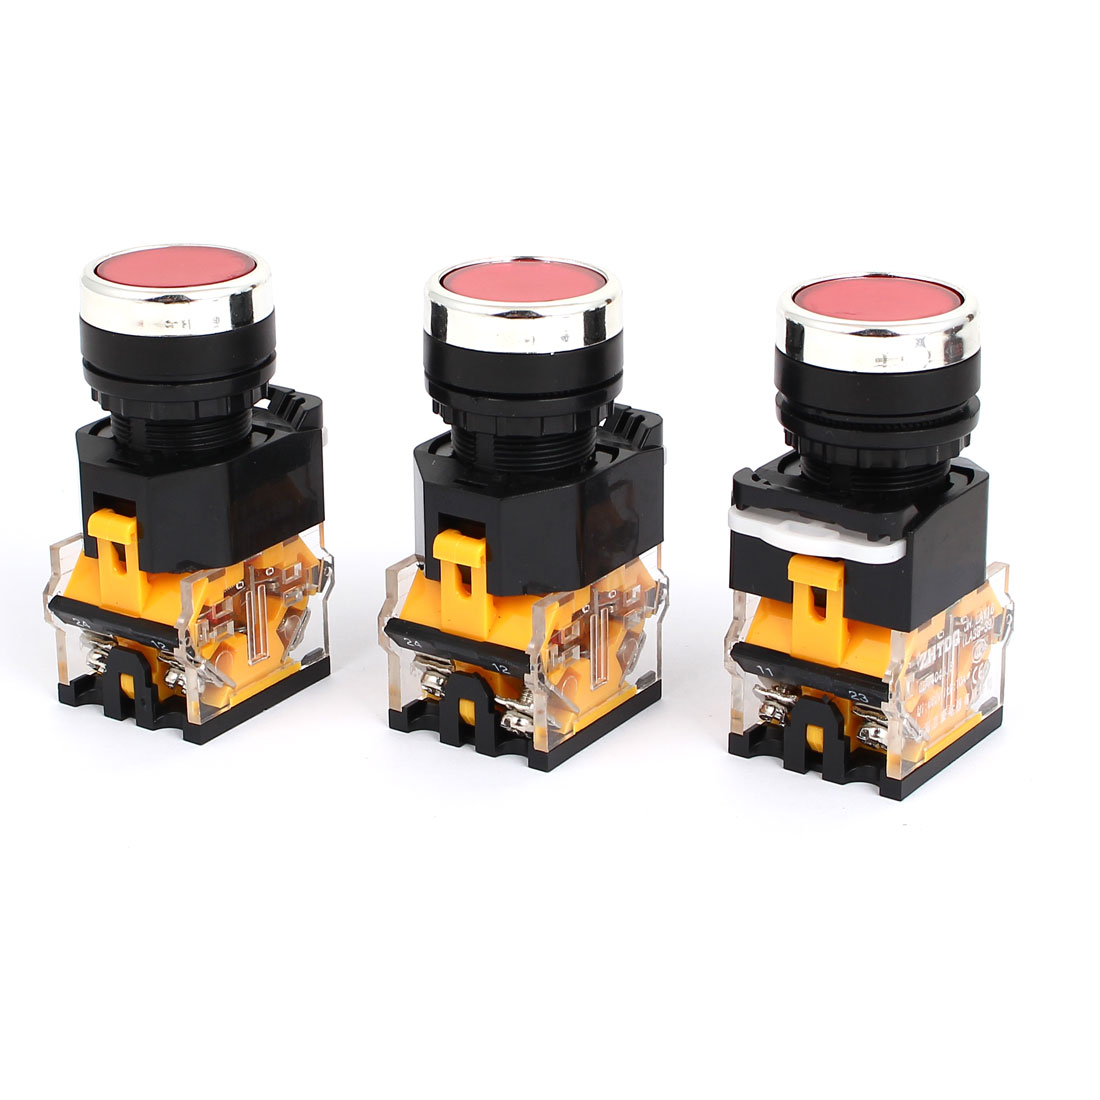 3pcs AC 220V Red Light LED Indicator Panel Mounted Self Locking Push Button Switch 660V 10A